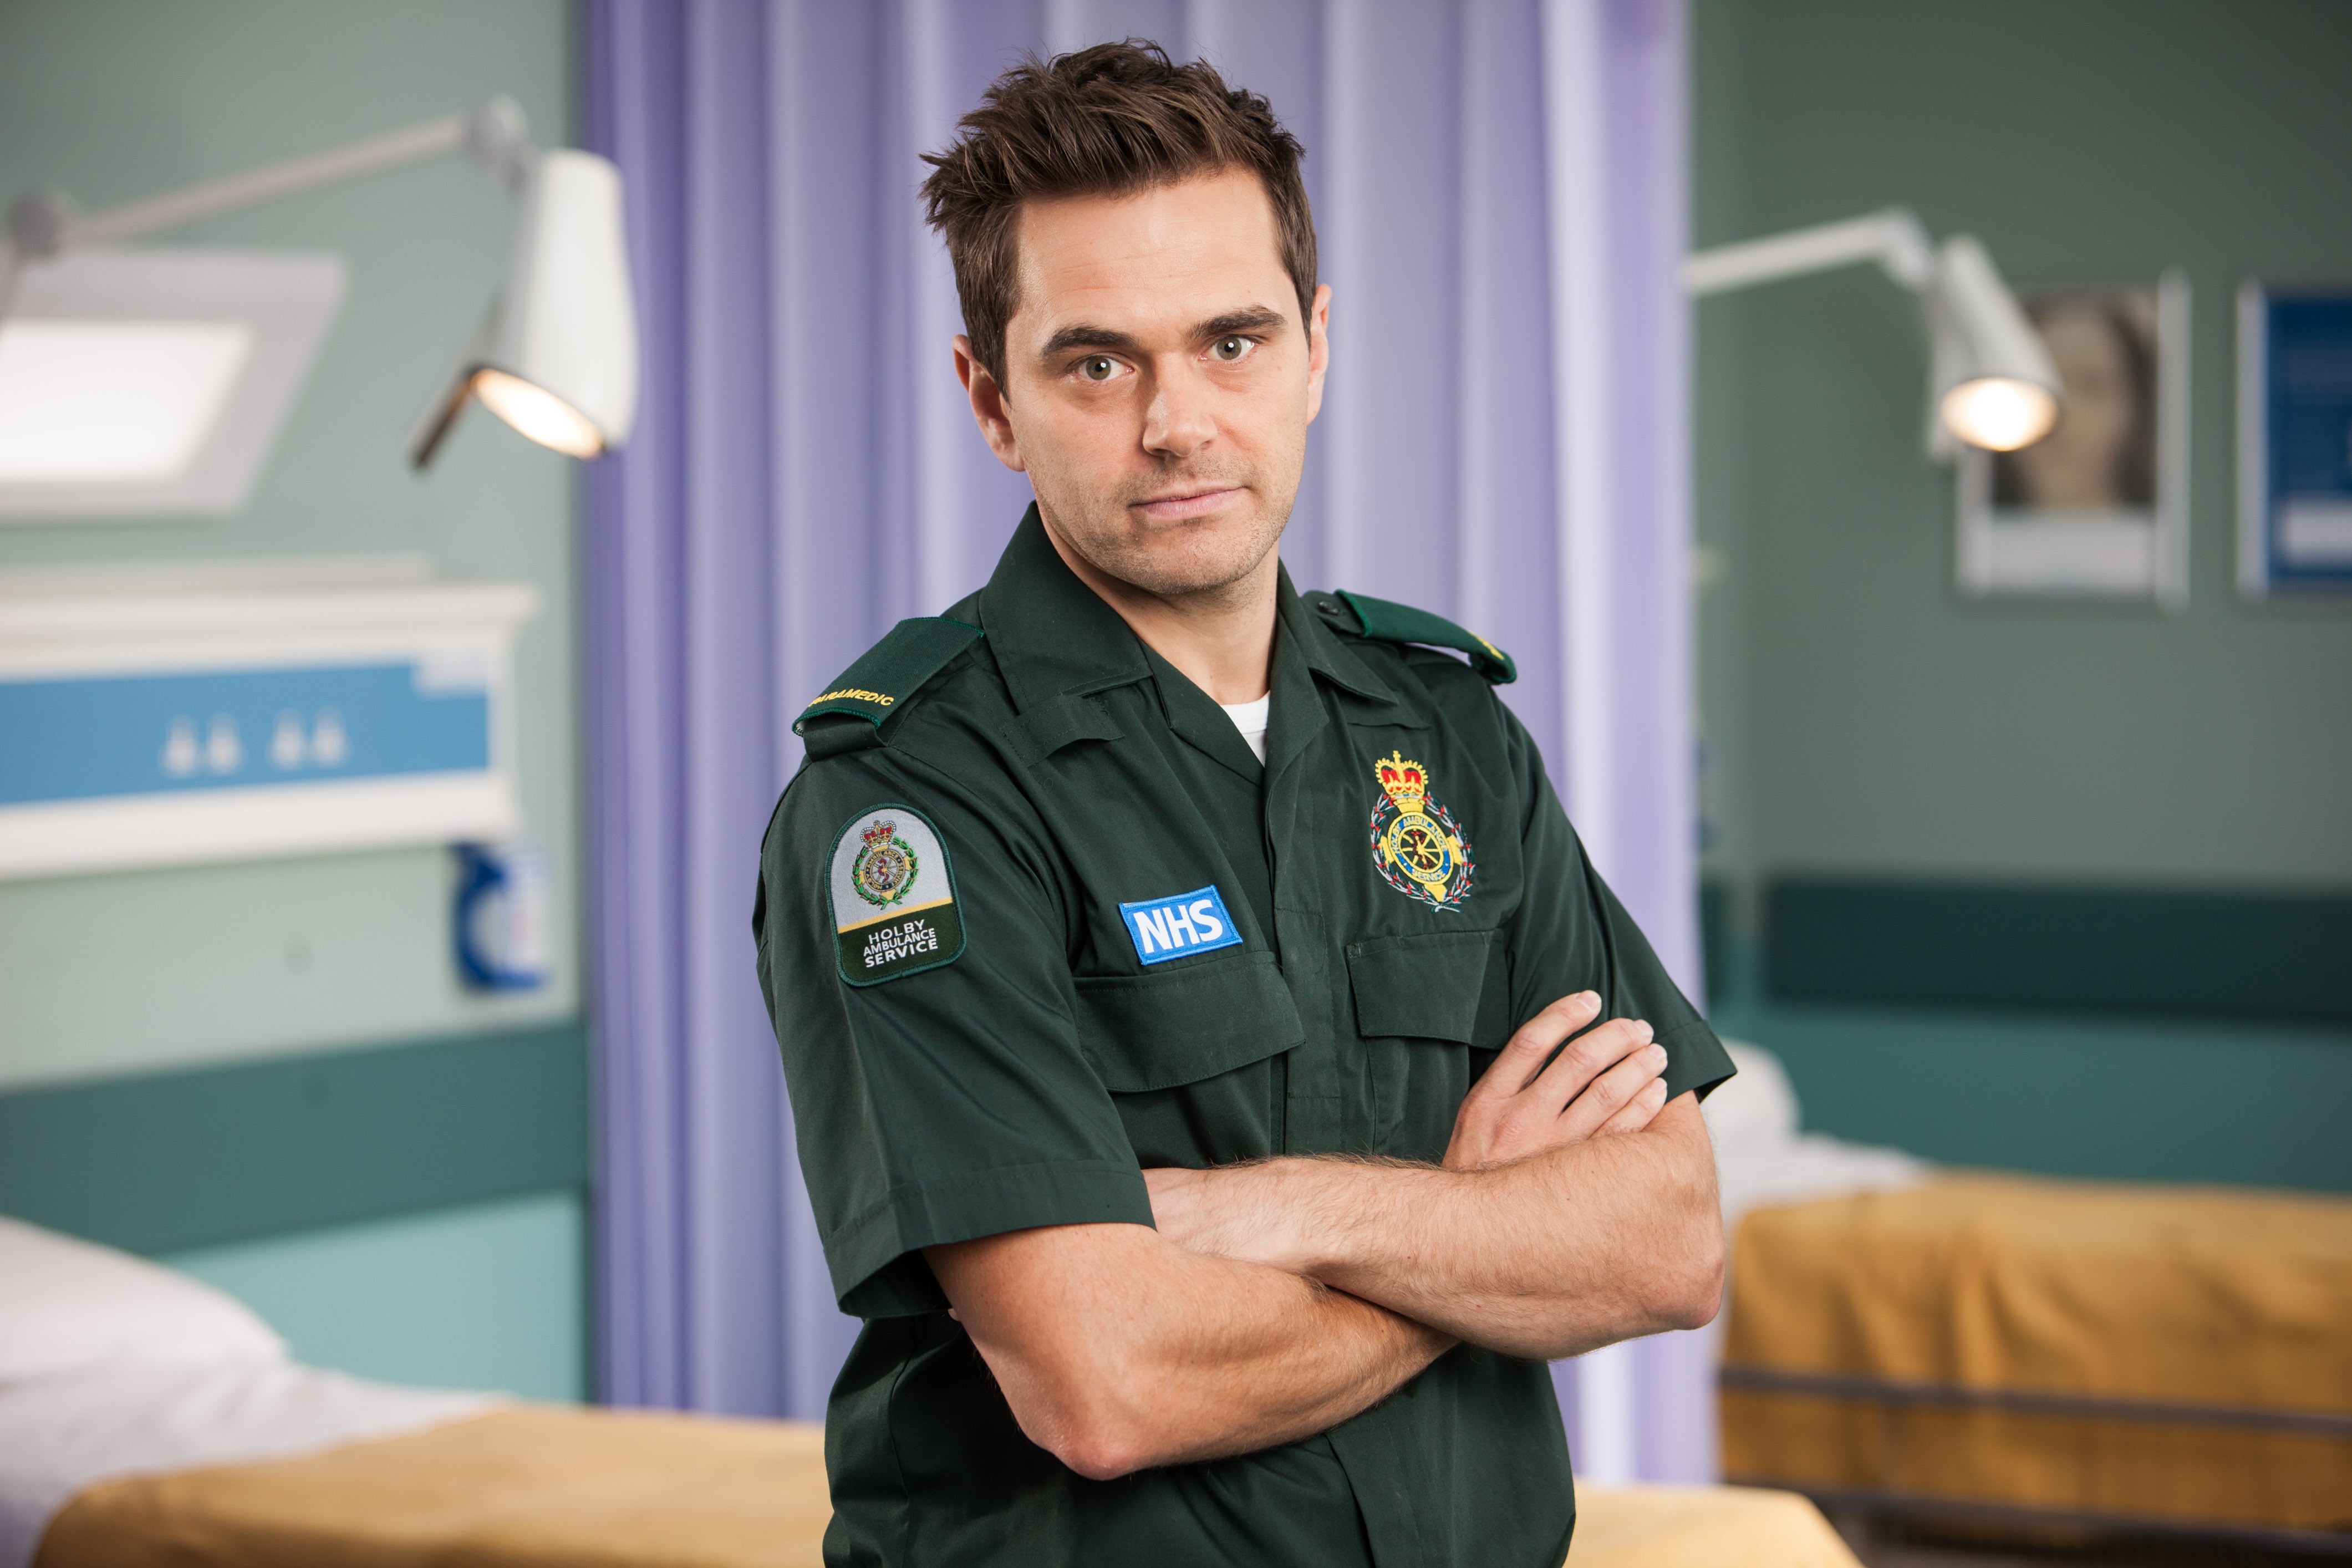 Casualty review: ED in turmoil after shock death